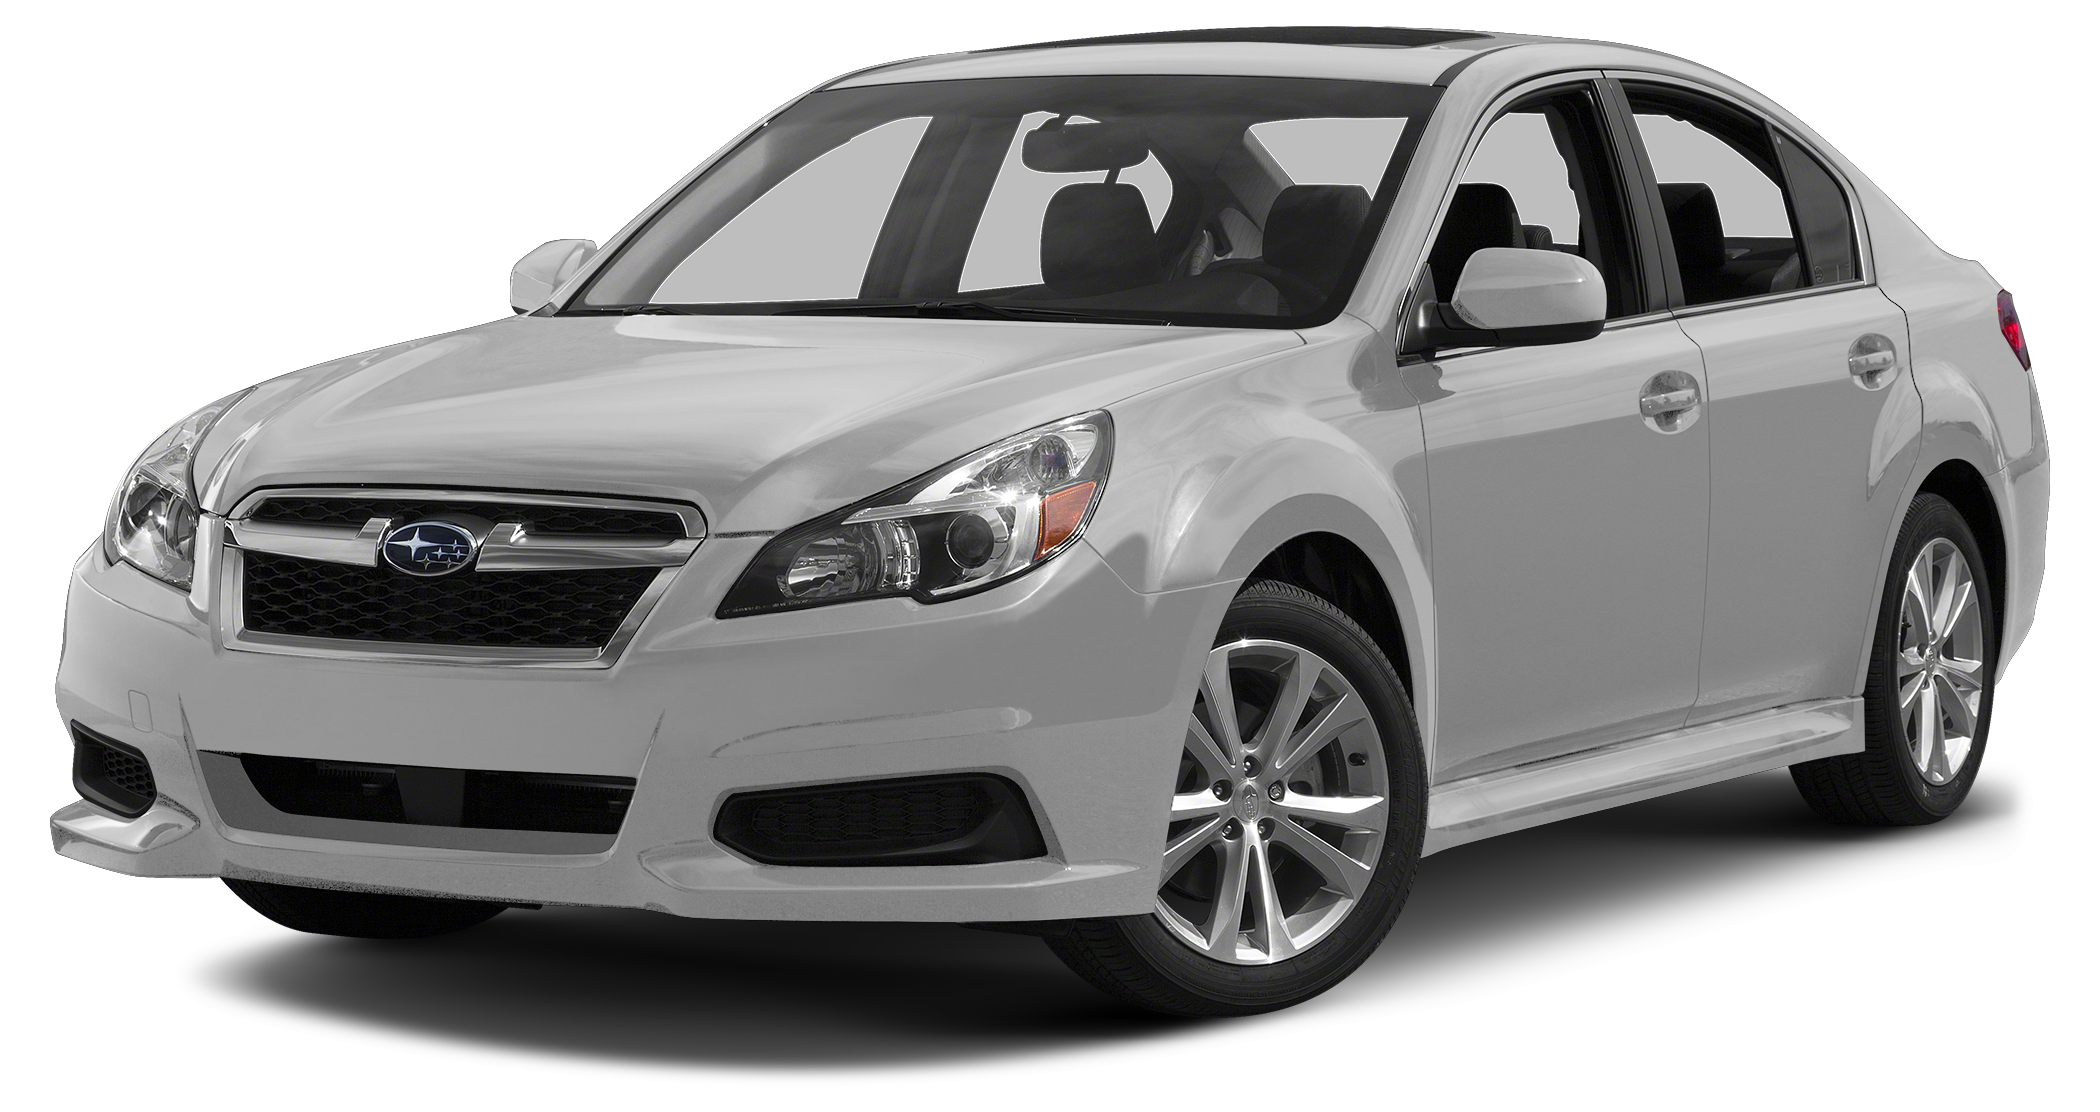 2013 Subaru Legacy 25i OUR PRICESYoure probably wondering why our prices are so much lower than